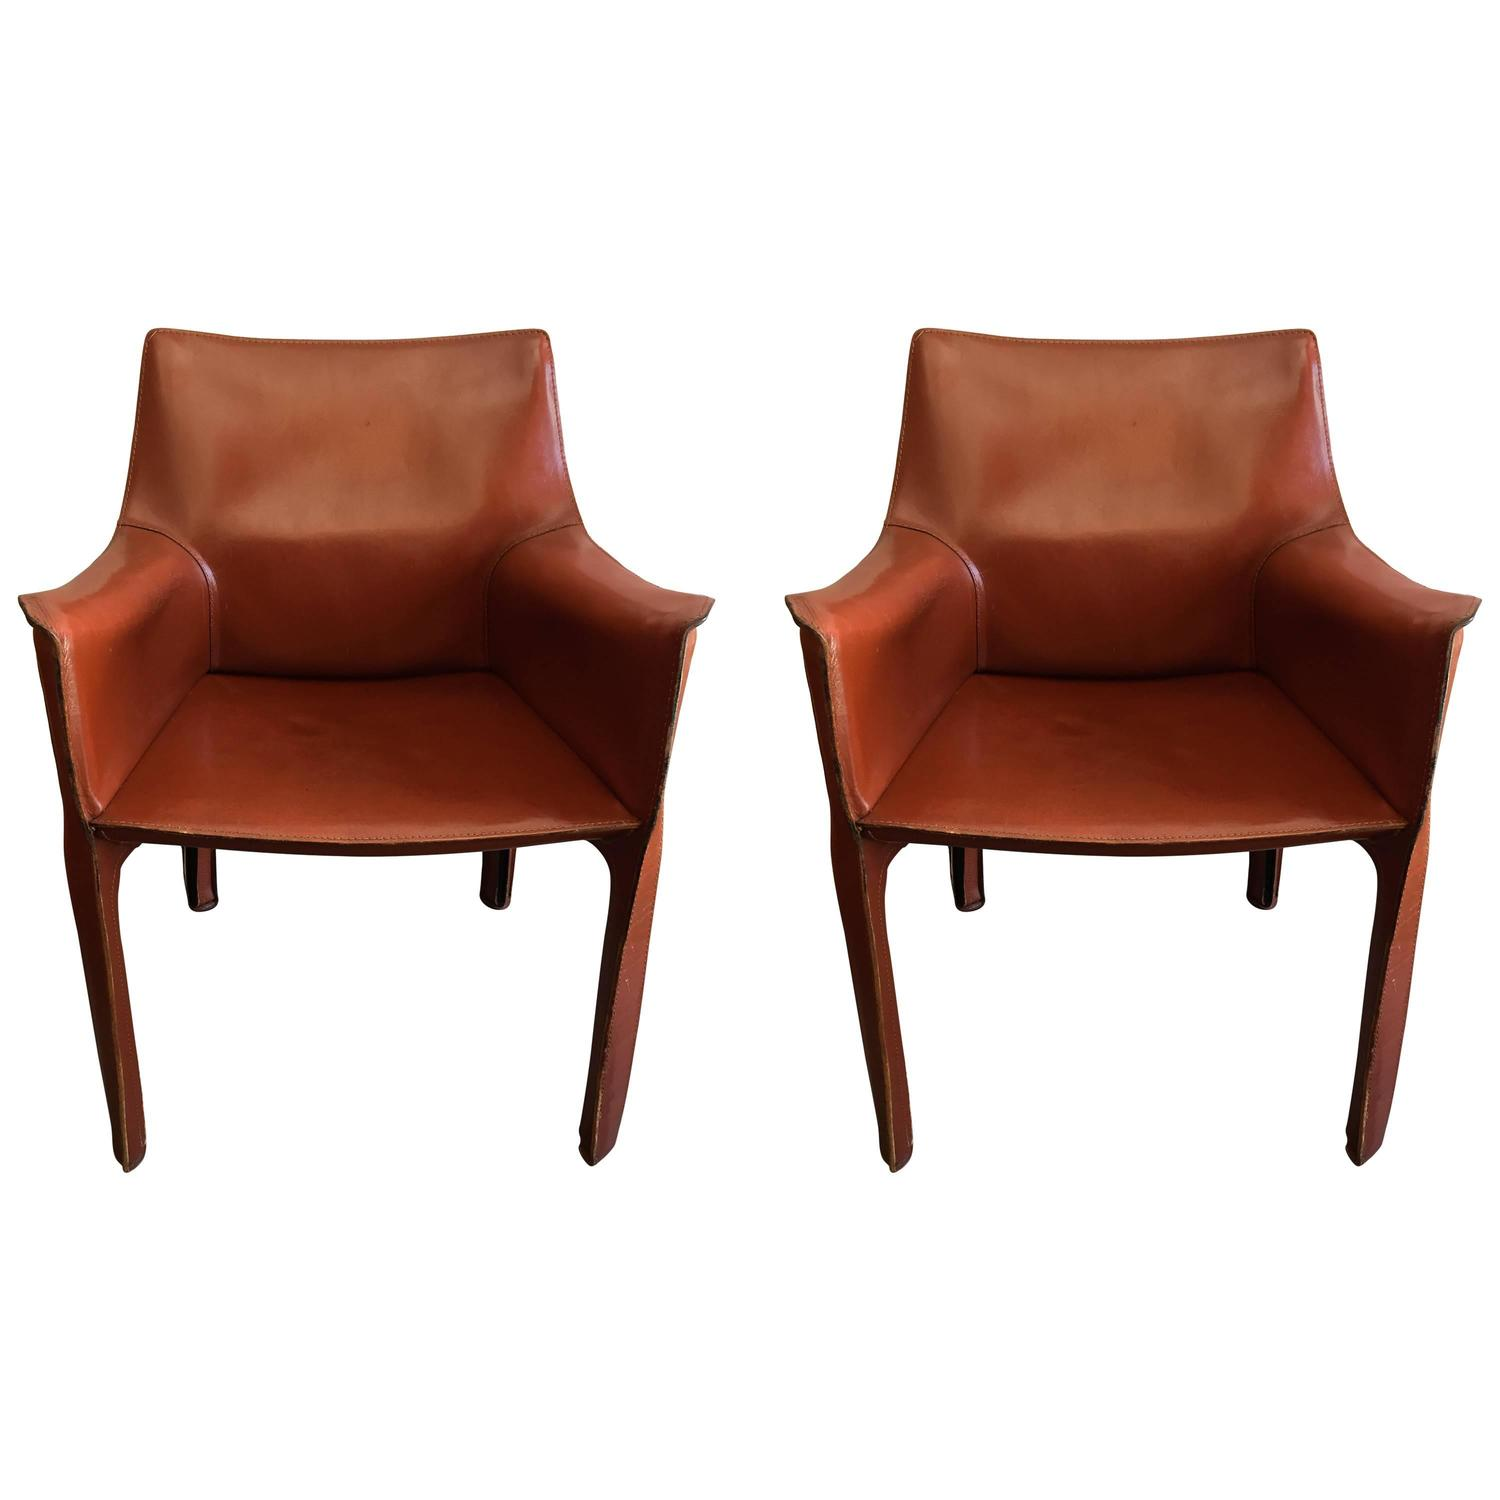 mario bellini chair navy dining room covers pair of cassina cab leather chairs at 1stdibs